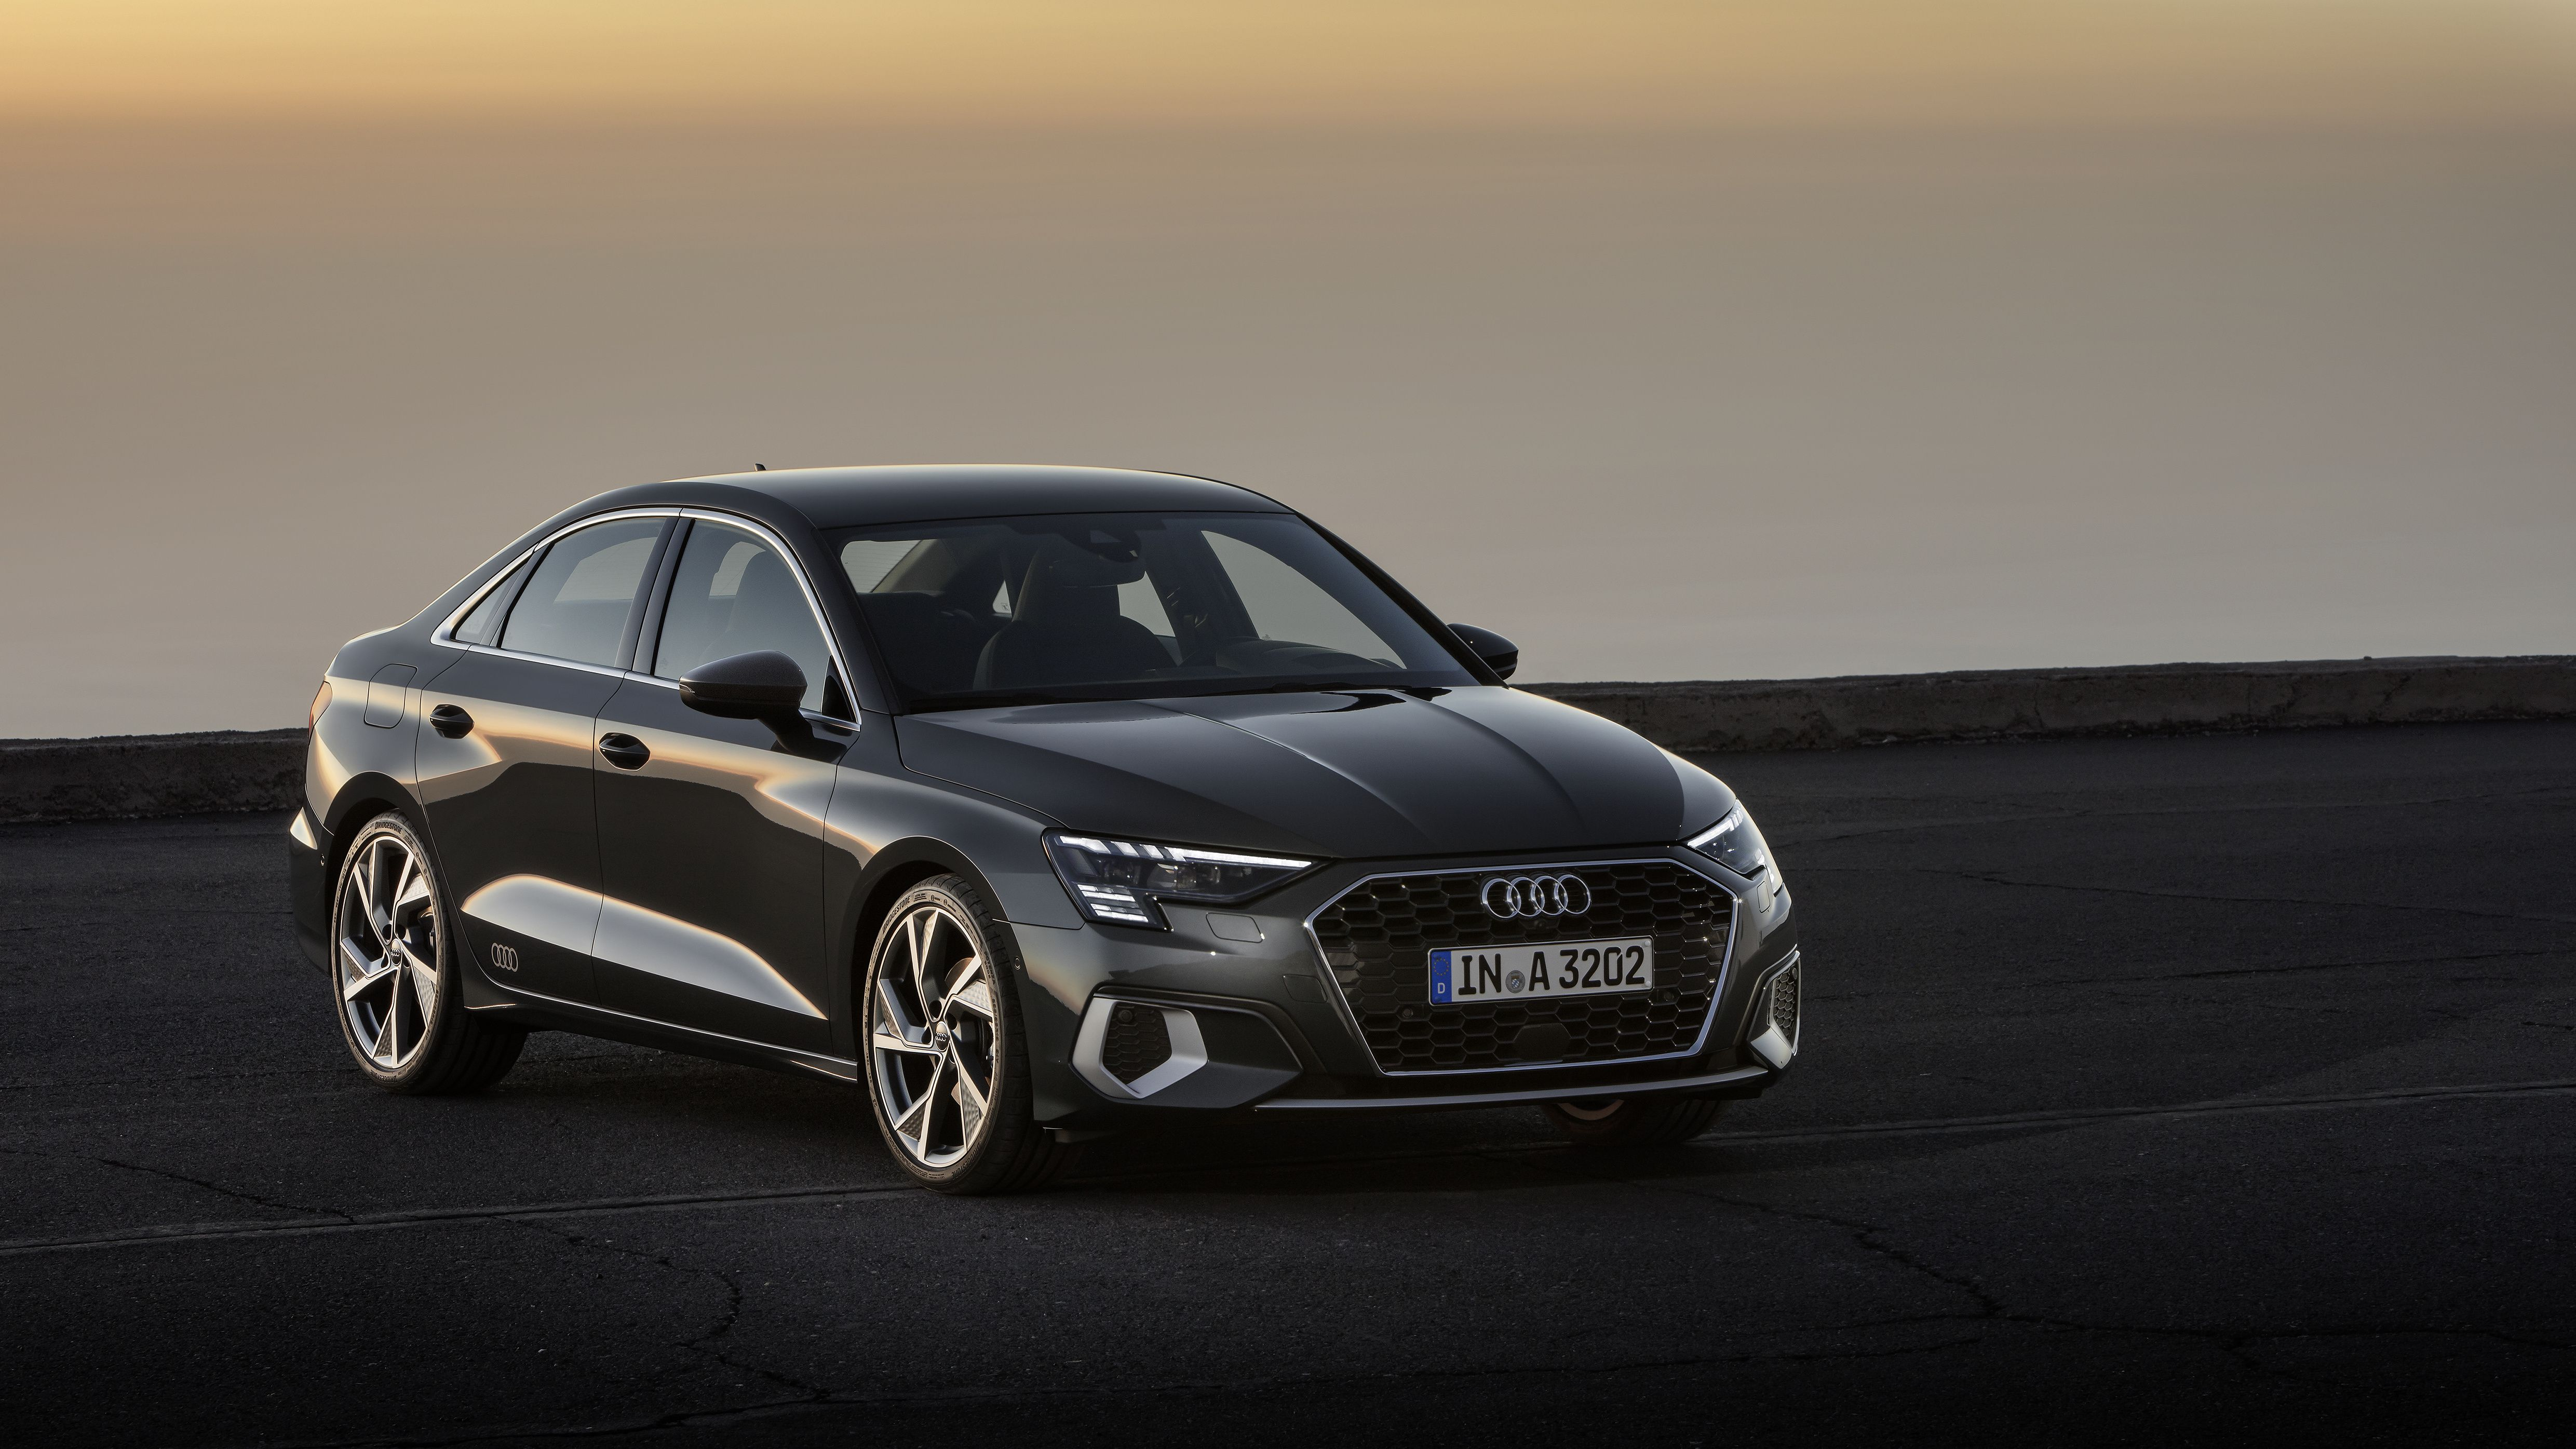 2021 Audi A3 Sedan Specs And Photo Gallery Top Speed In 2020 Audi A3 Sedan Audi Audi A3